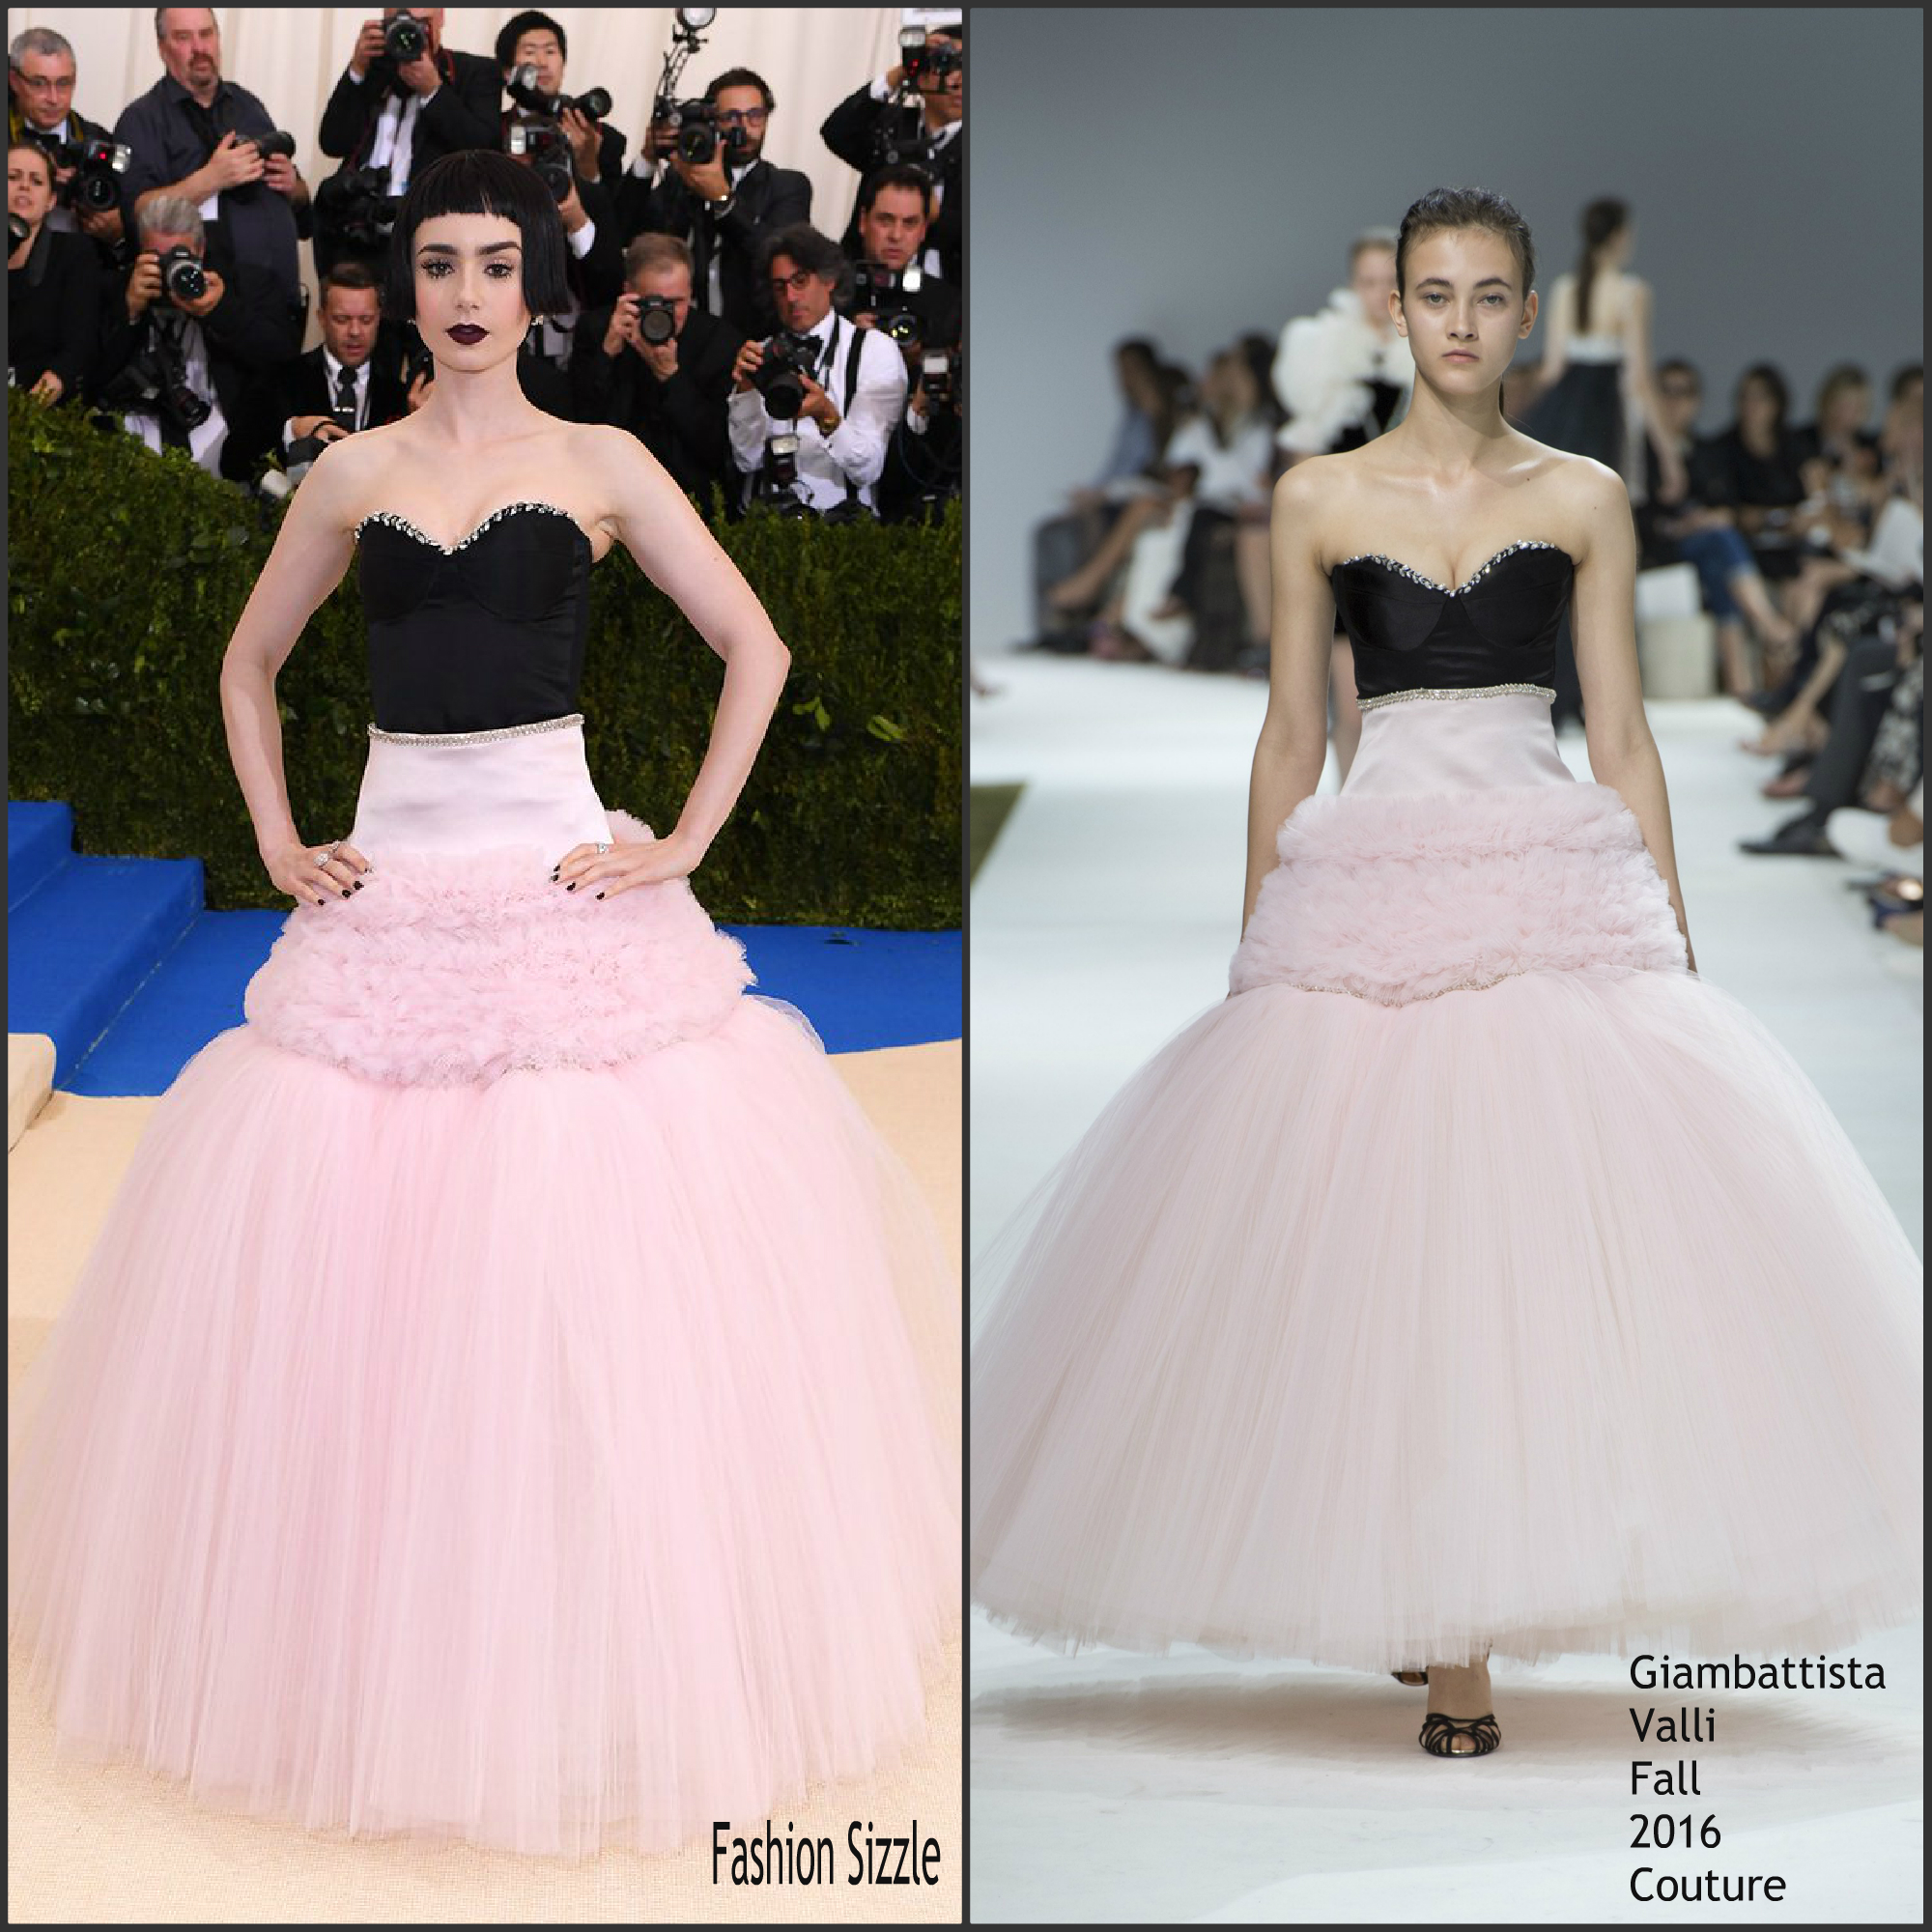 lily-collins-in-giambattista-valli-couture-2017-met-gala